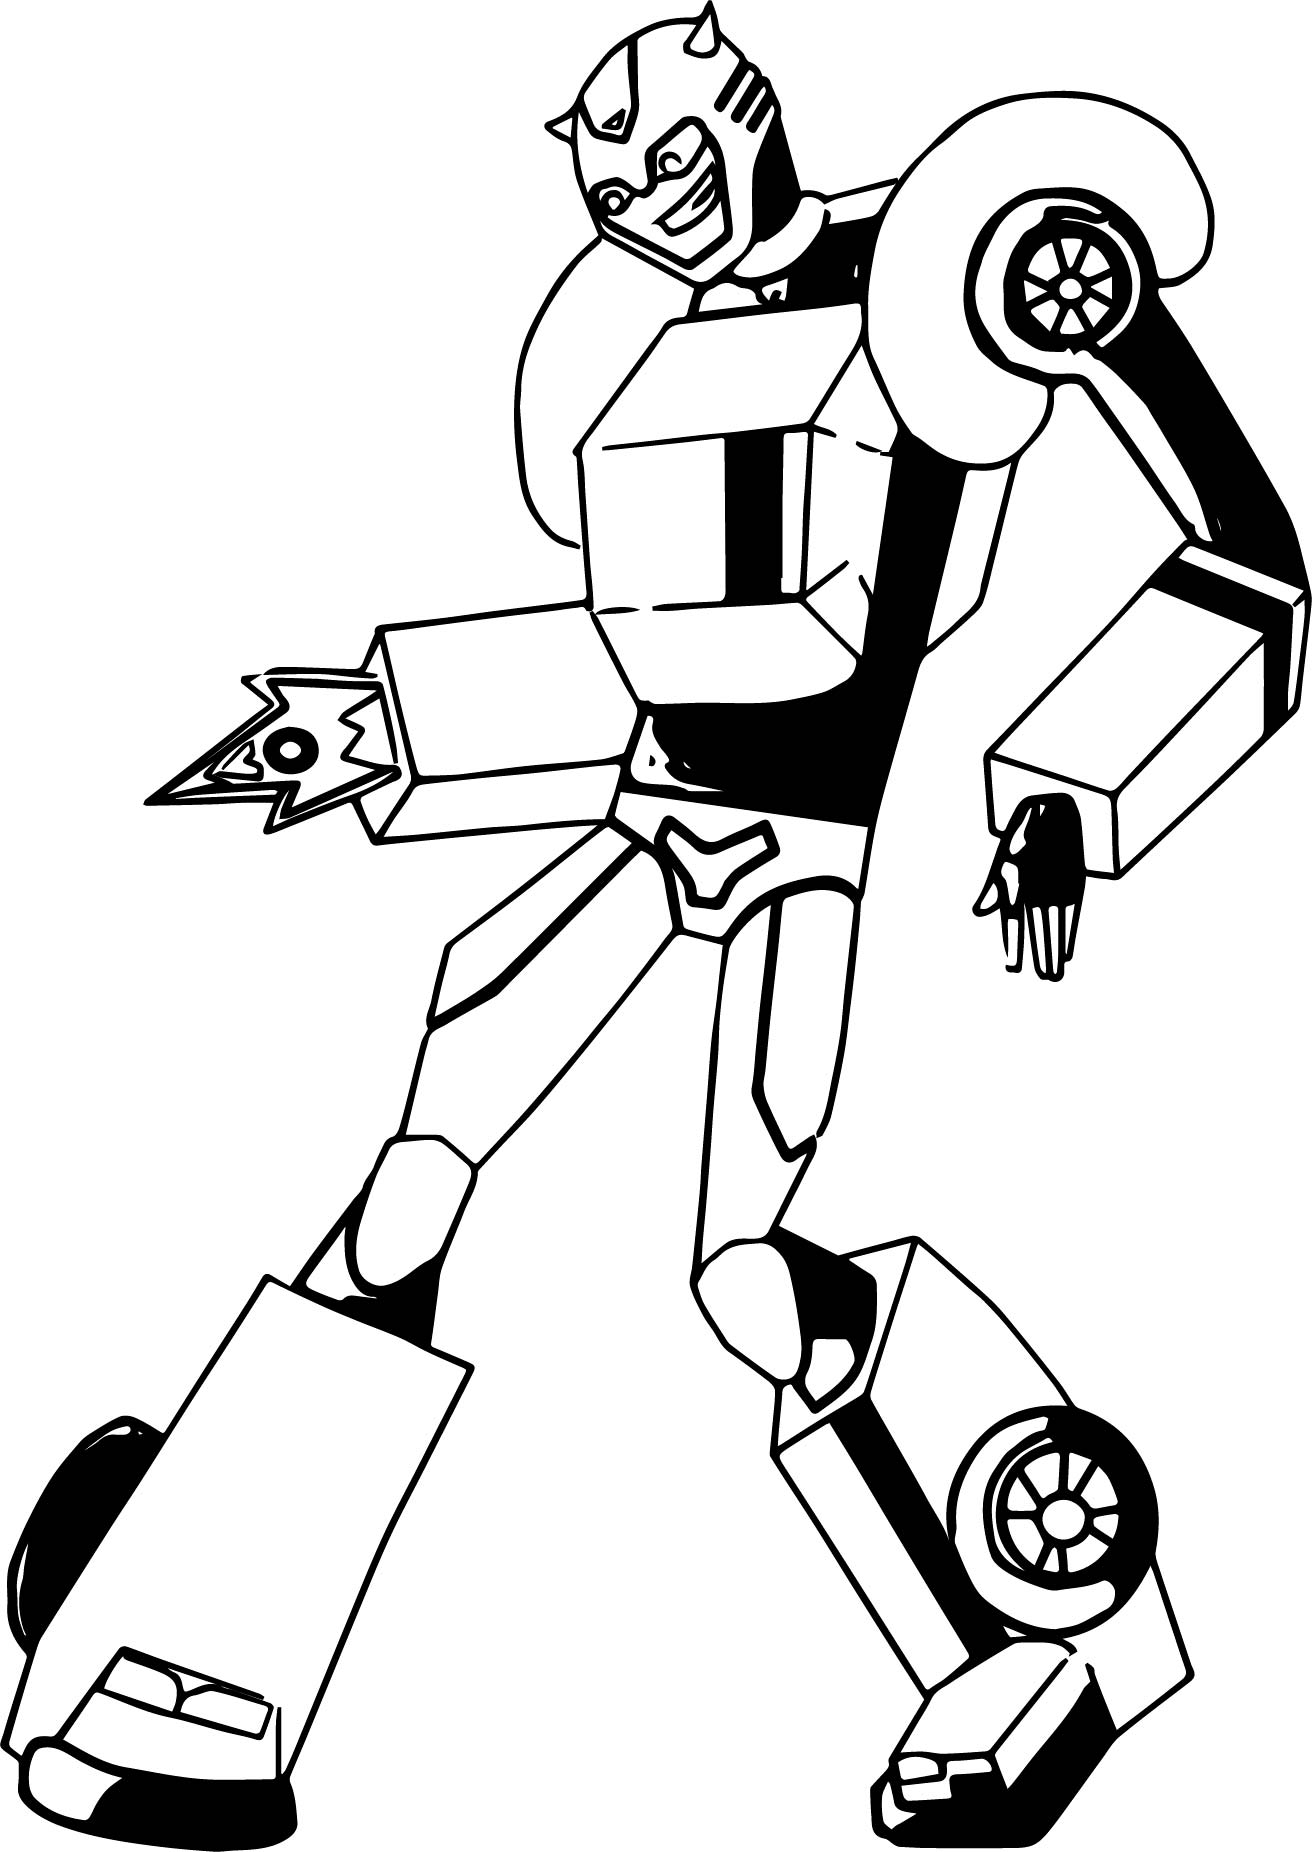 Bumblebee fire transformer coloring page for Transformers animated coloring pages